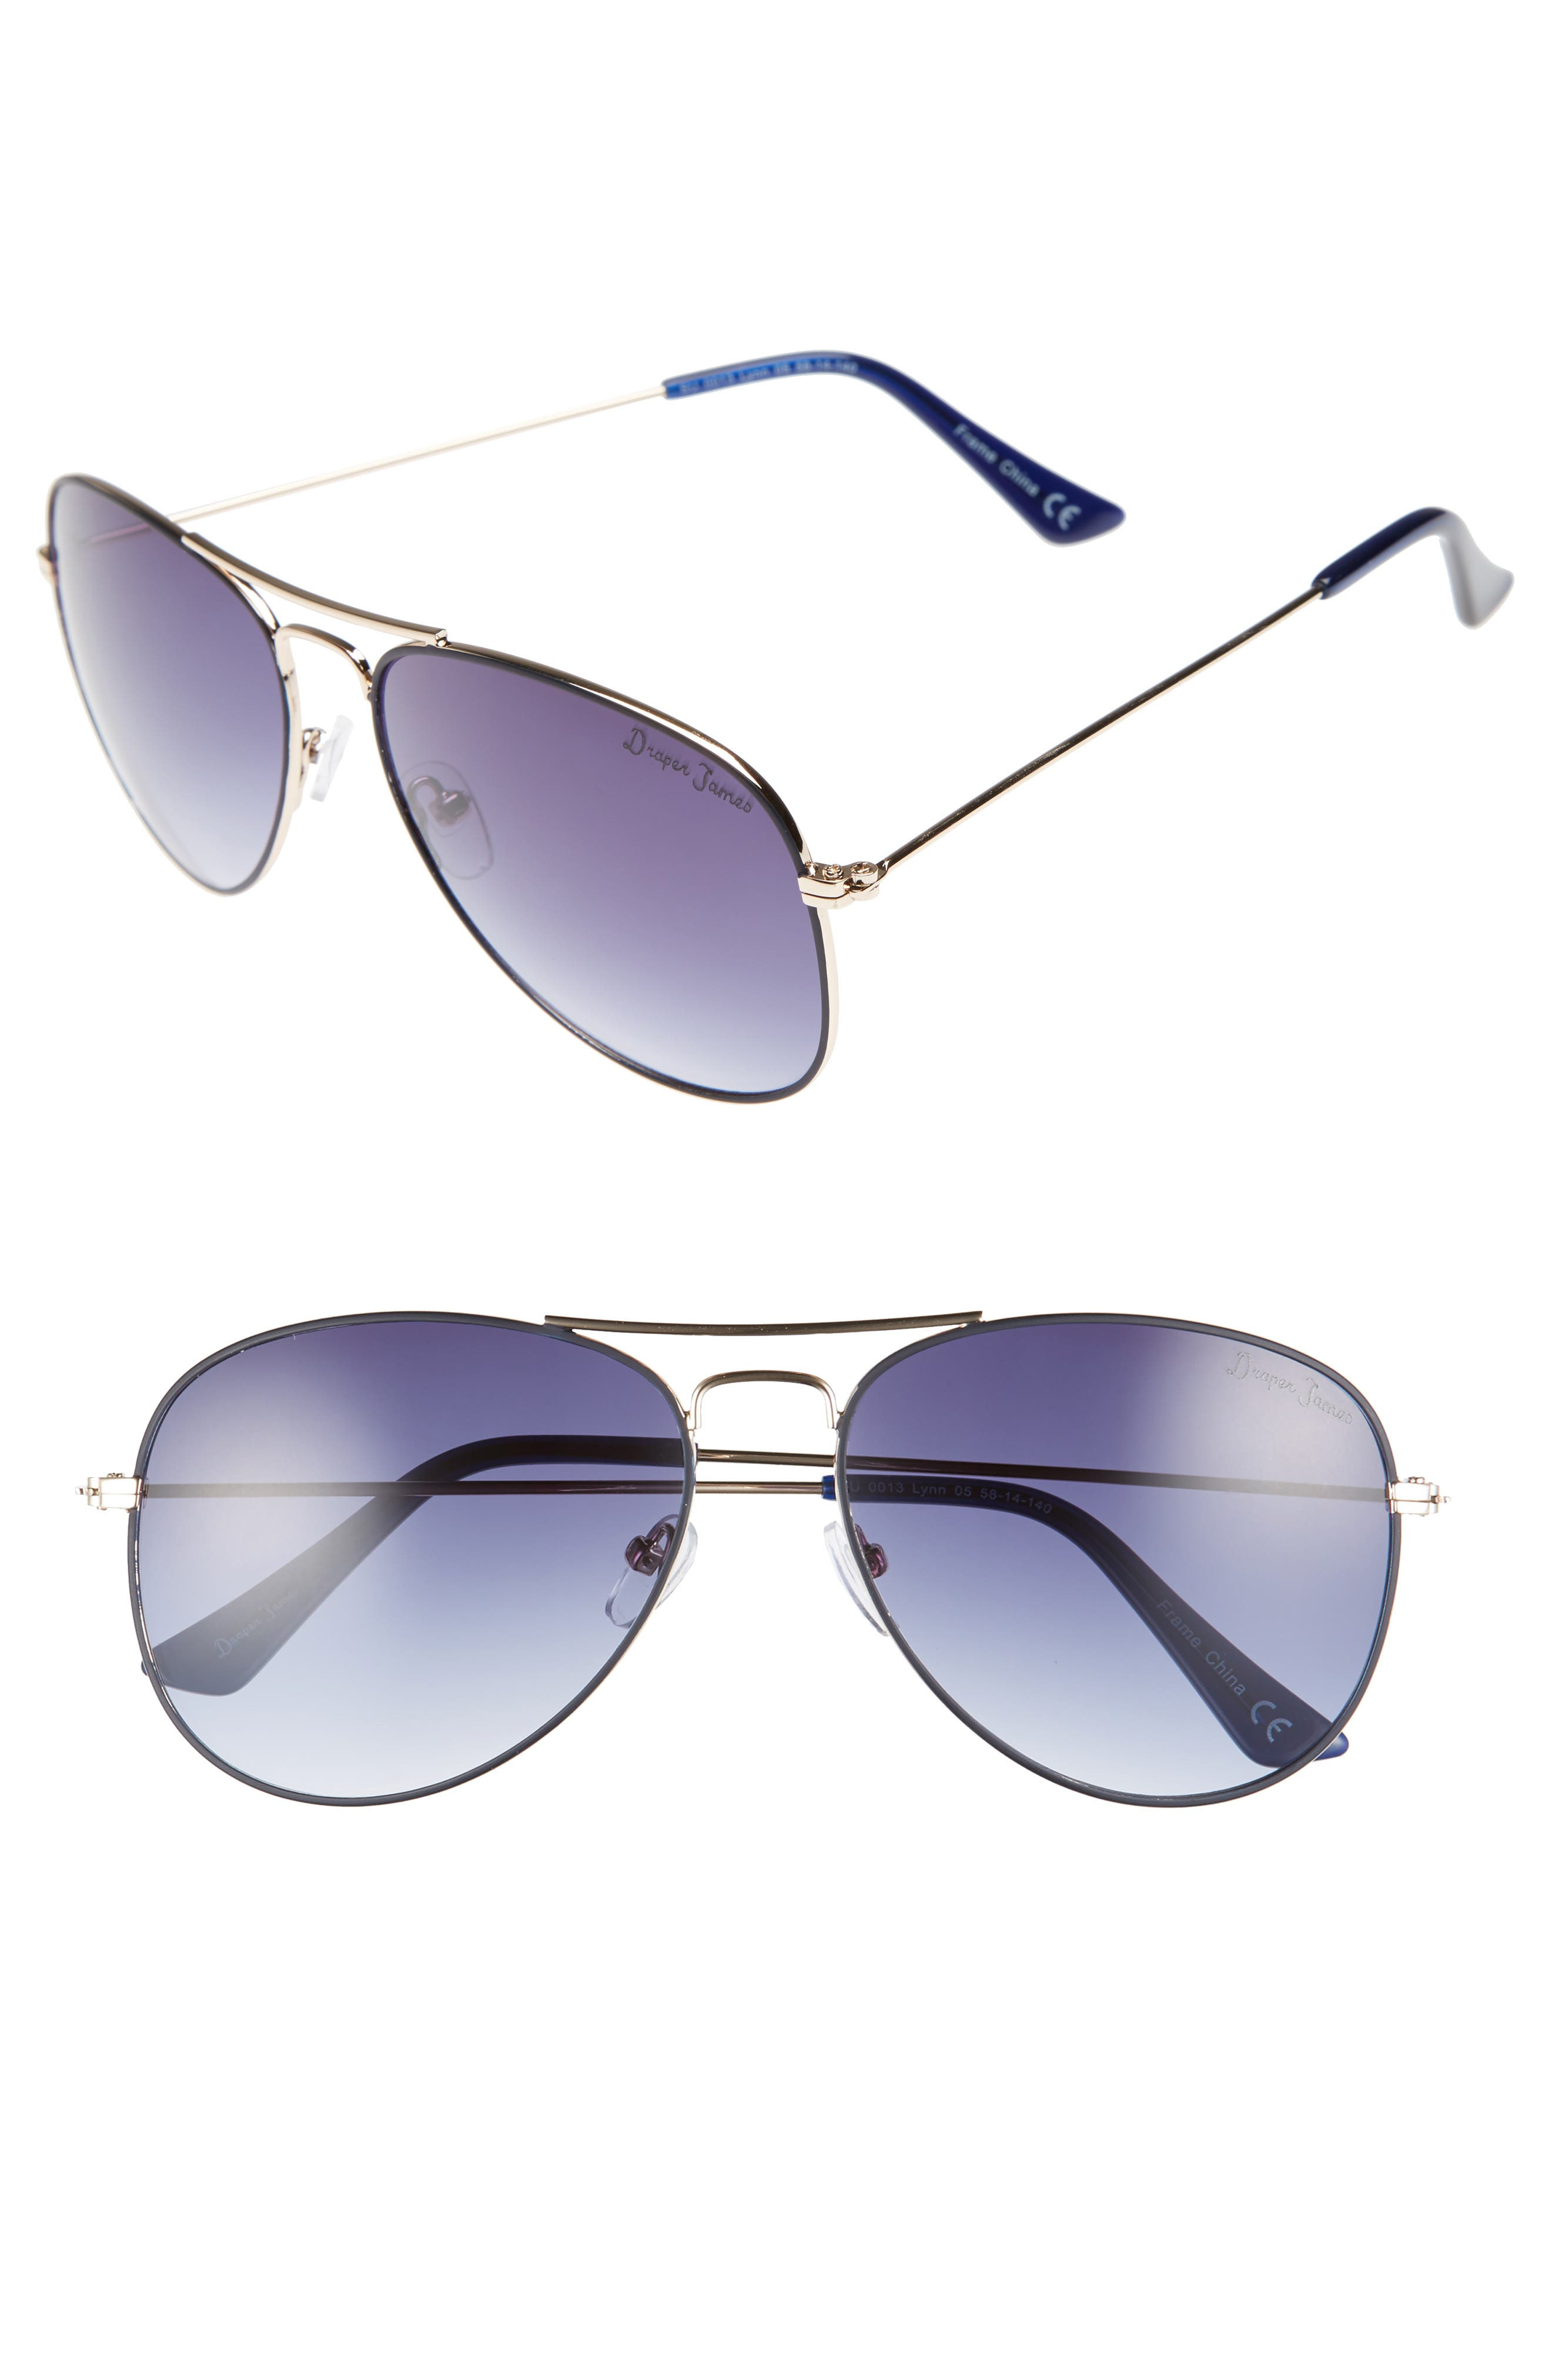 58mm Gradient Aviator Sunglasses,                             Main thumbnail 1, color,